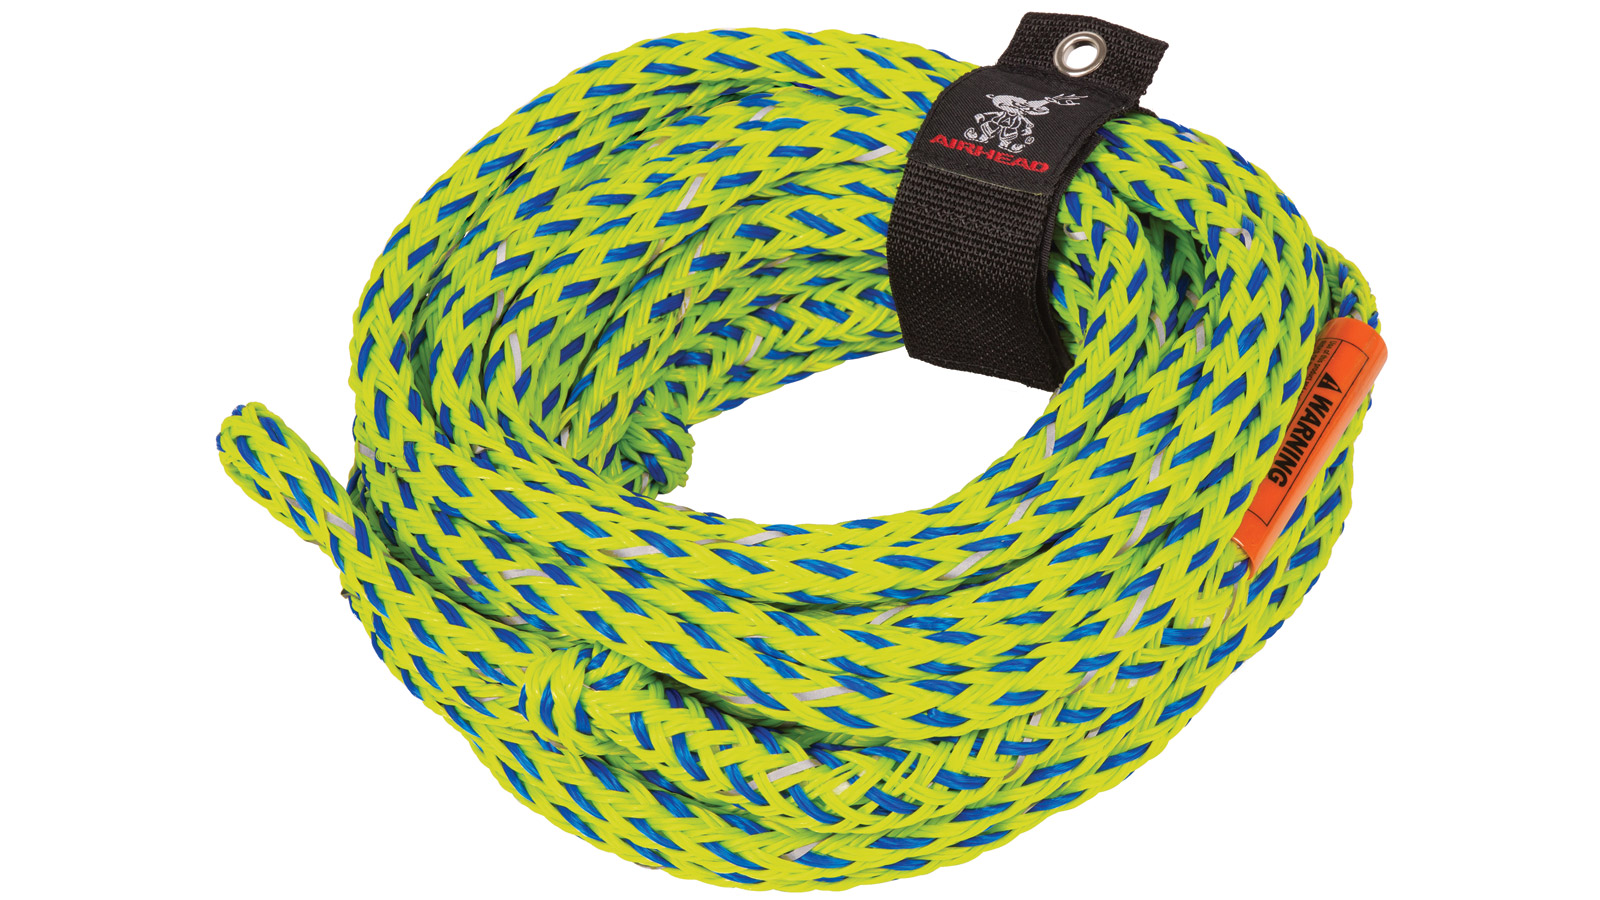 Airhead Tow Harness Sporting Goods Rope 4 Rider